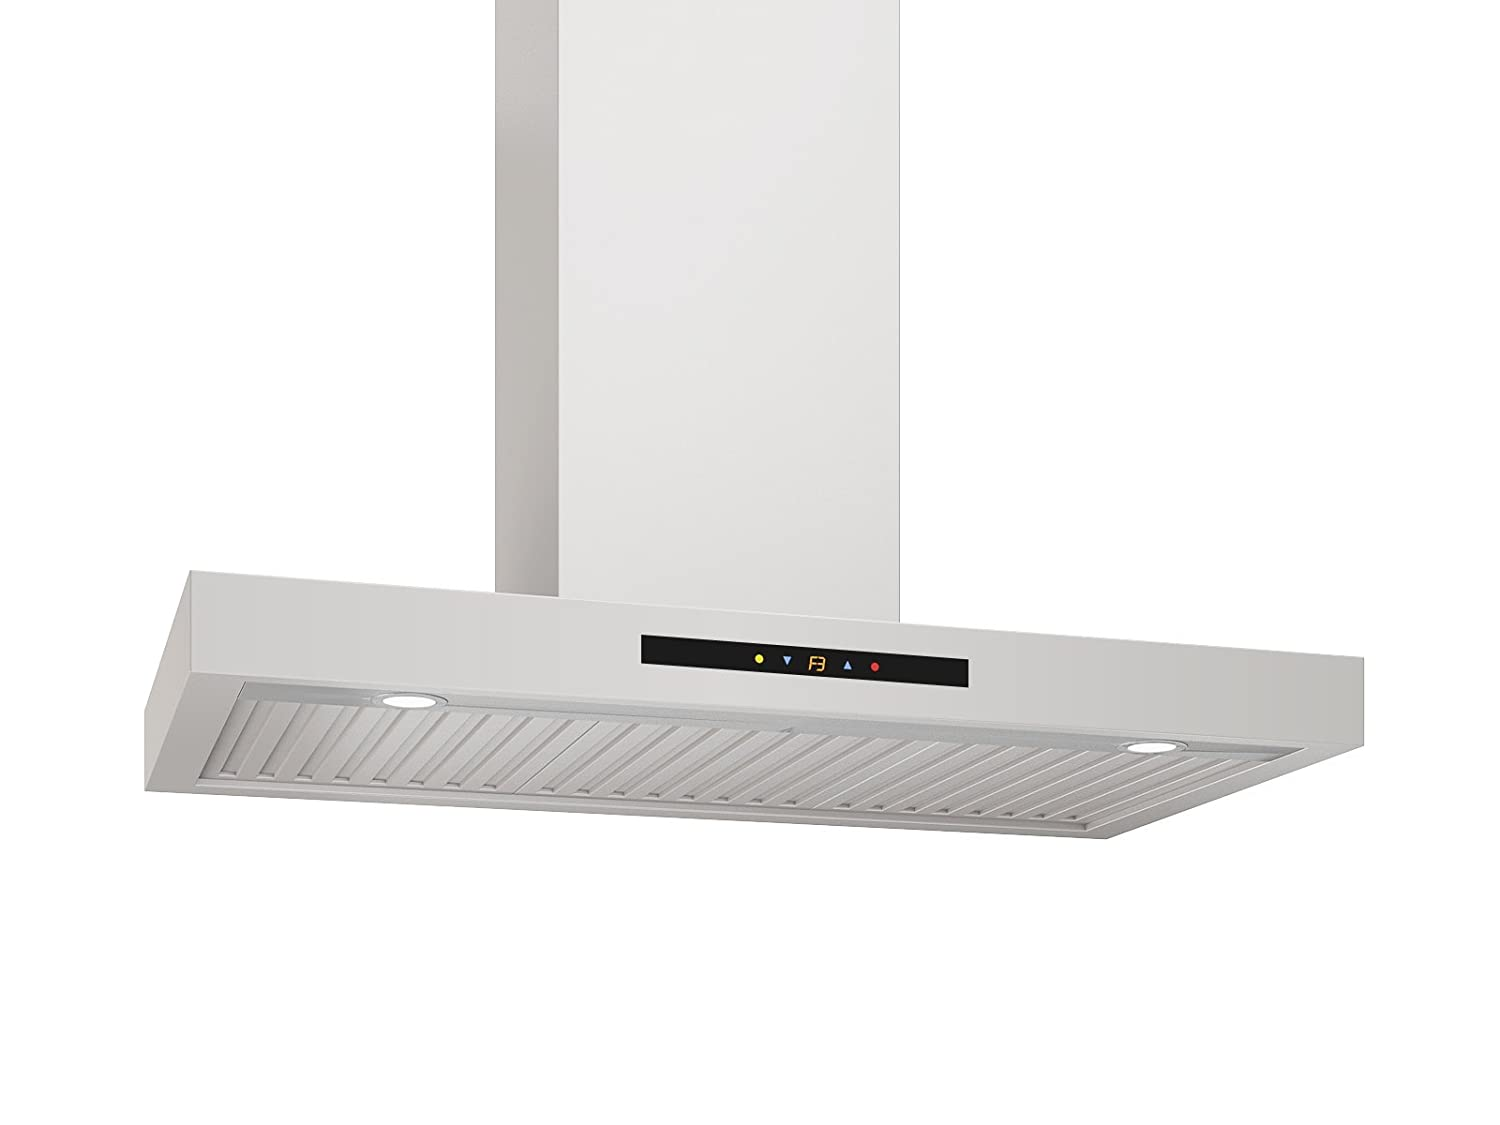 Ancona WRC436 Wall-Mounted Rectangle Shaped Convertible Range Hood, 36-Inch, Stainless Steel AMS Inc AN-1190